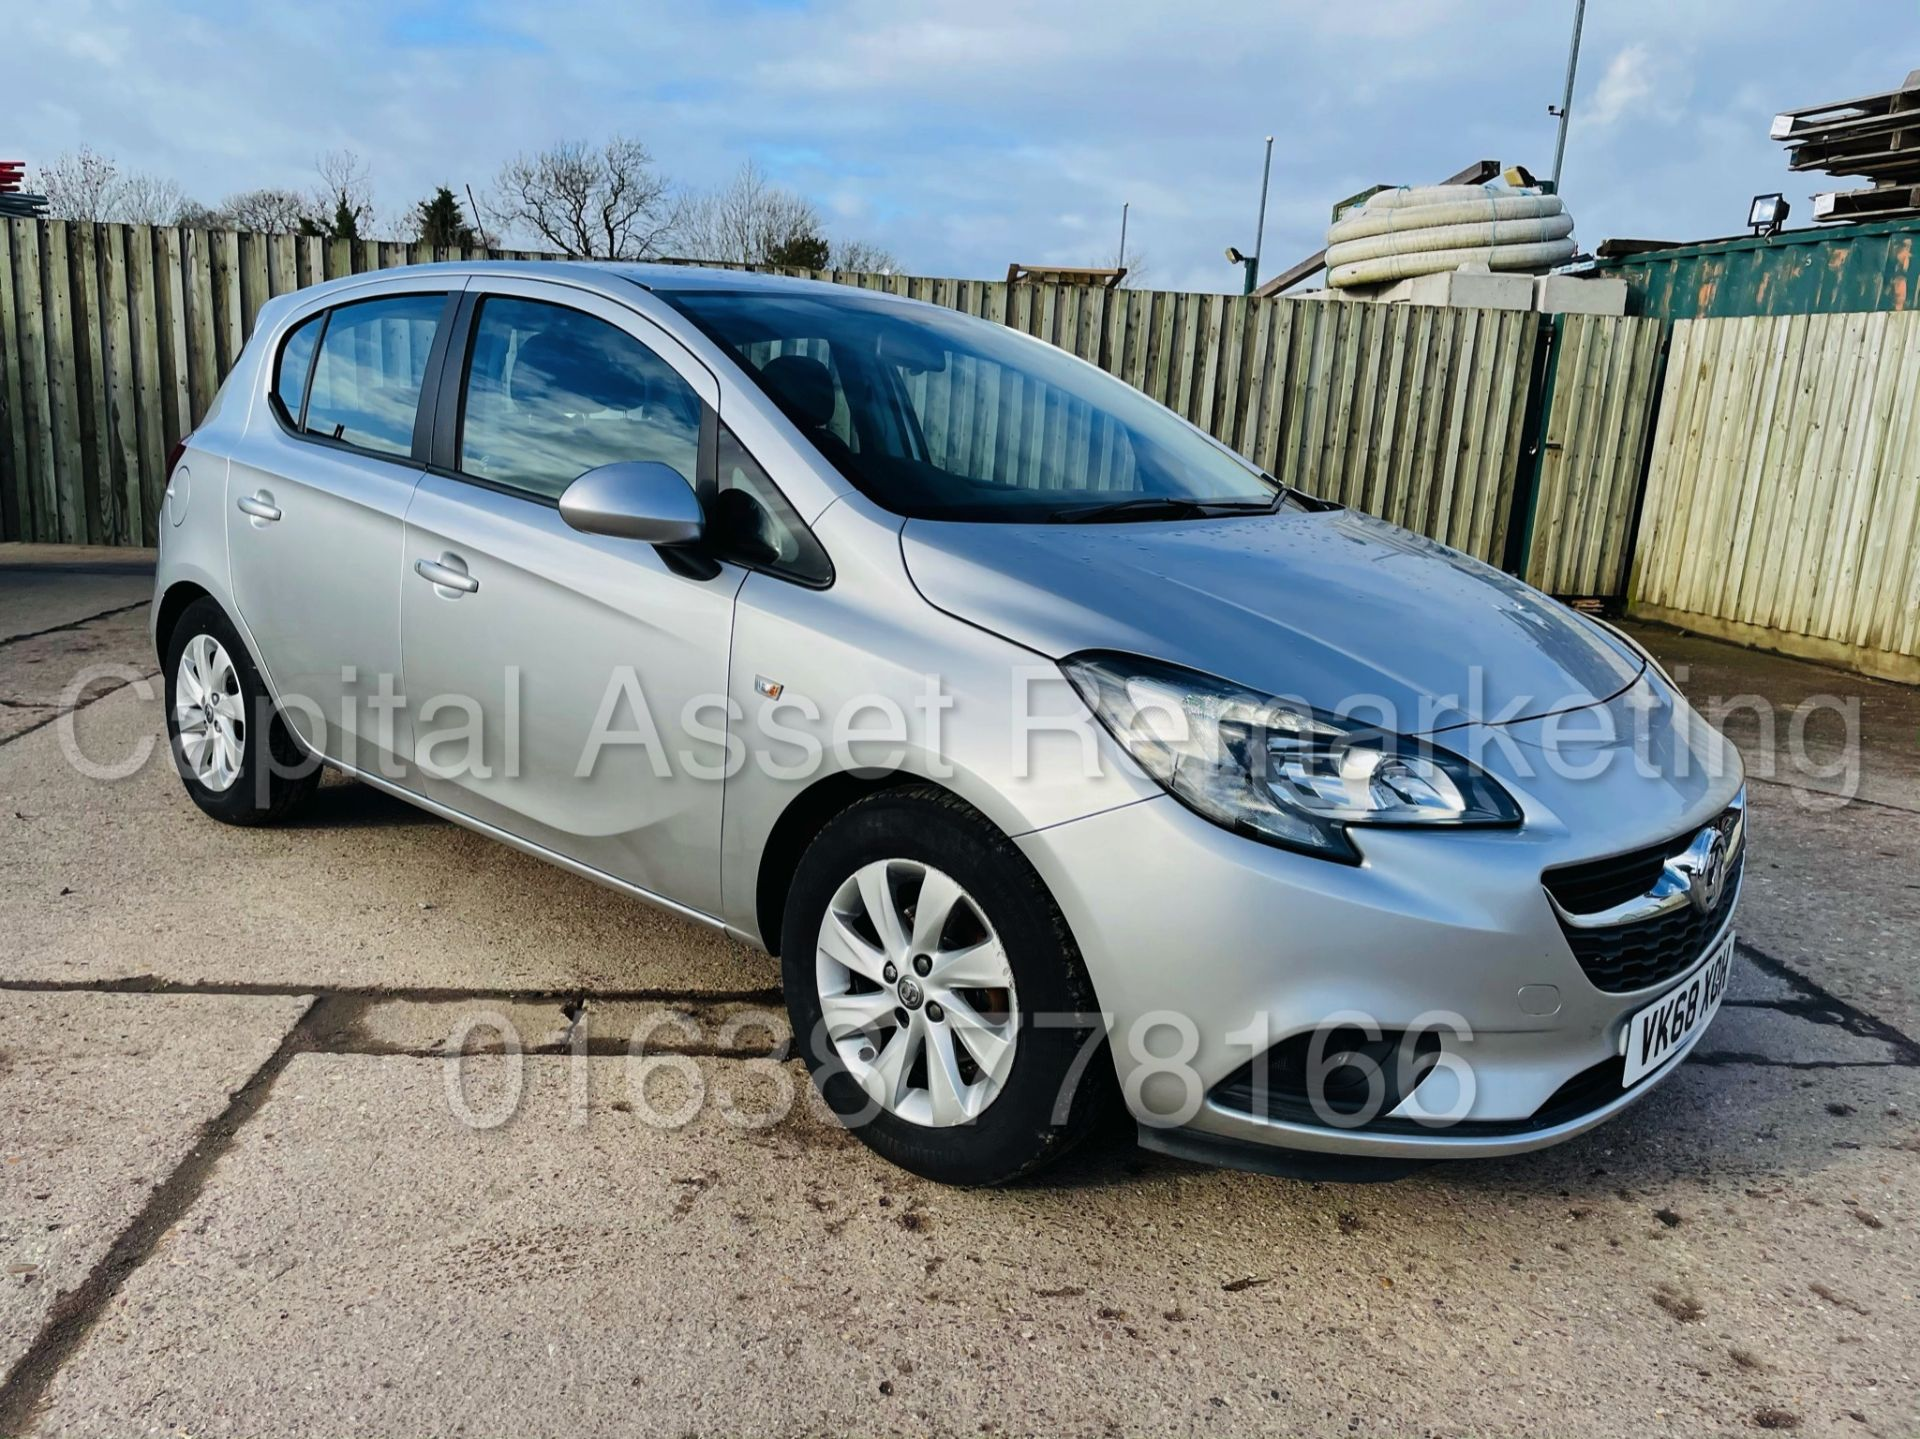 On Sale VAUXHALL CORSA *DESIGN EDITION* 5 DOOR HATCHBACK (2019 - NEW MODEL) 1.4 PETROL - (1 OWNER) - Image 2 of 42